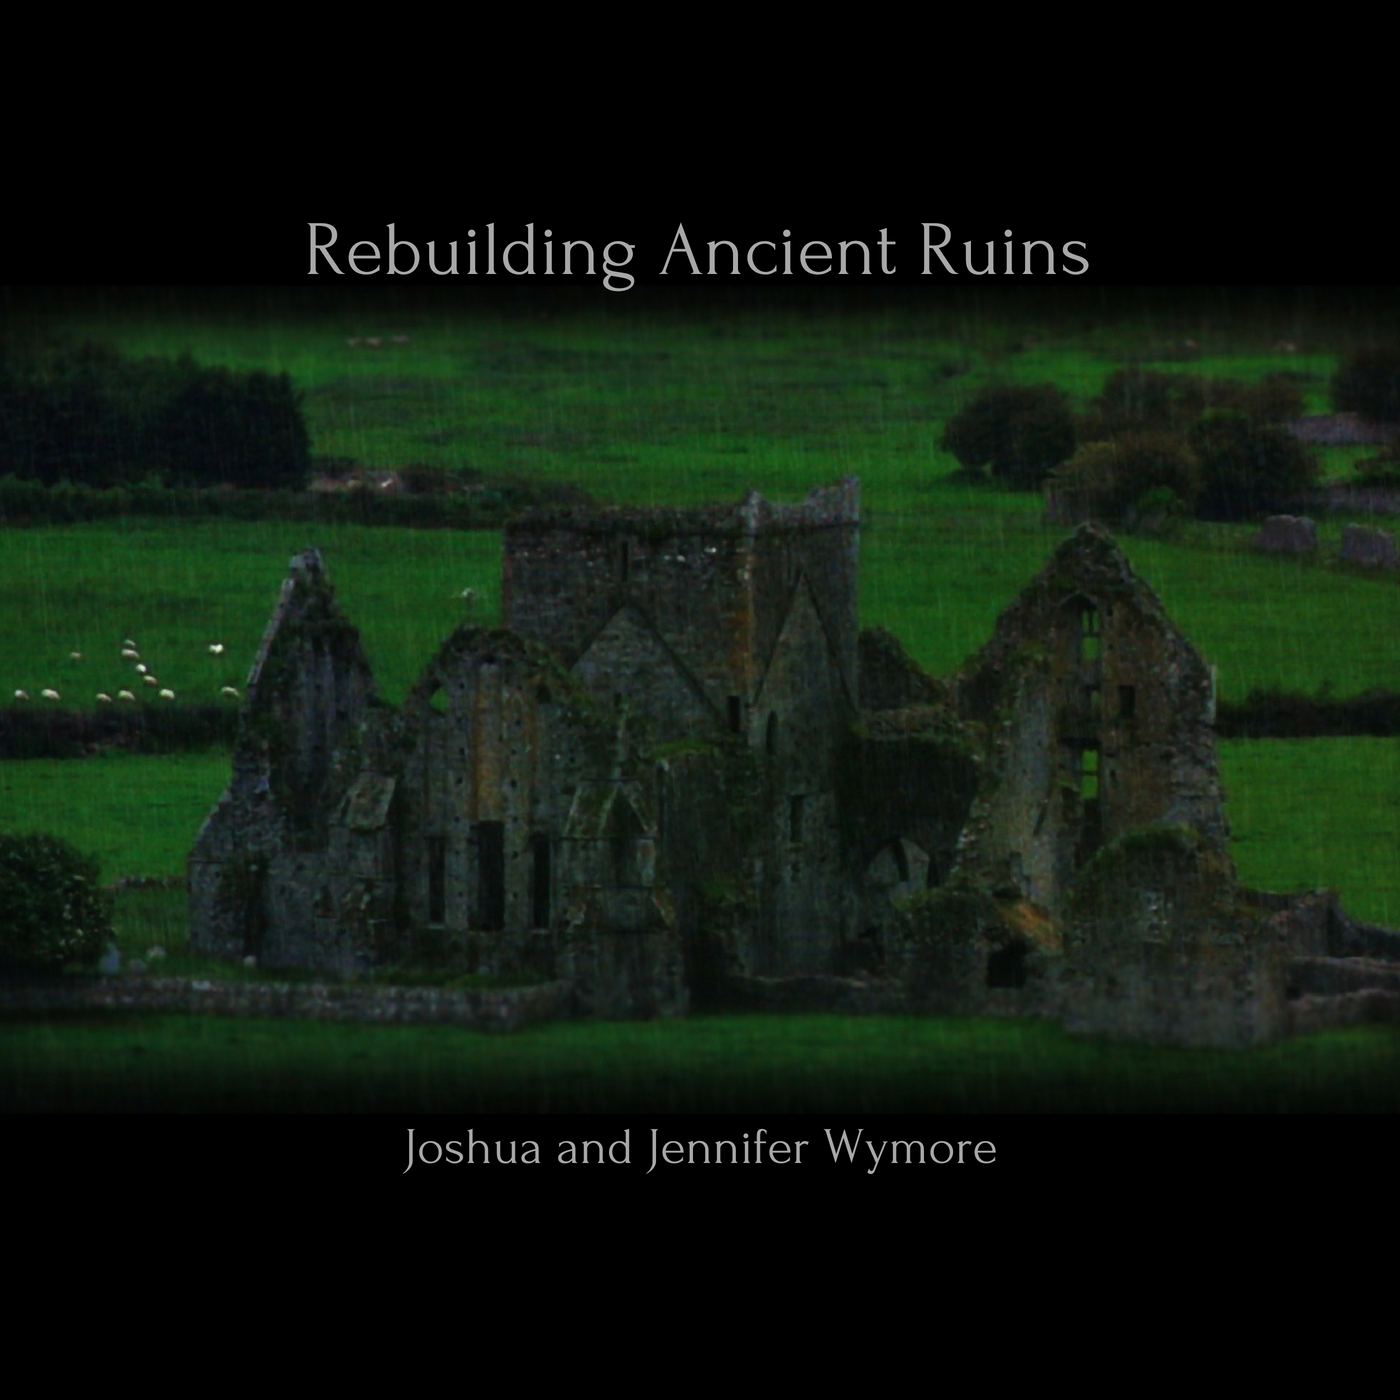 Into the Promise - The first track off Rebuilding Ancient Ruins, an album I recorded back in 2007. This song was written in a time of hardship, when nothing seemed to be going right. Ever felt that way? That's the time to press on and press in; the time to renew our resolve to totally trust the Lord. Circumstances don't determine our destiny, that honour belongs only to Jesus as we place our lives in His hands.